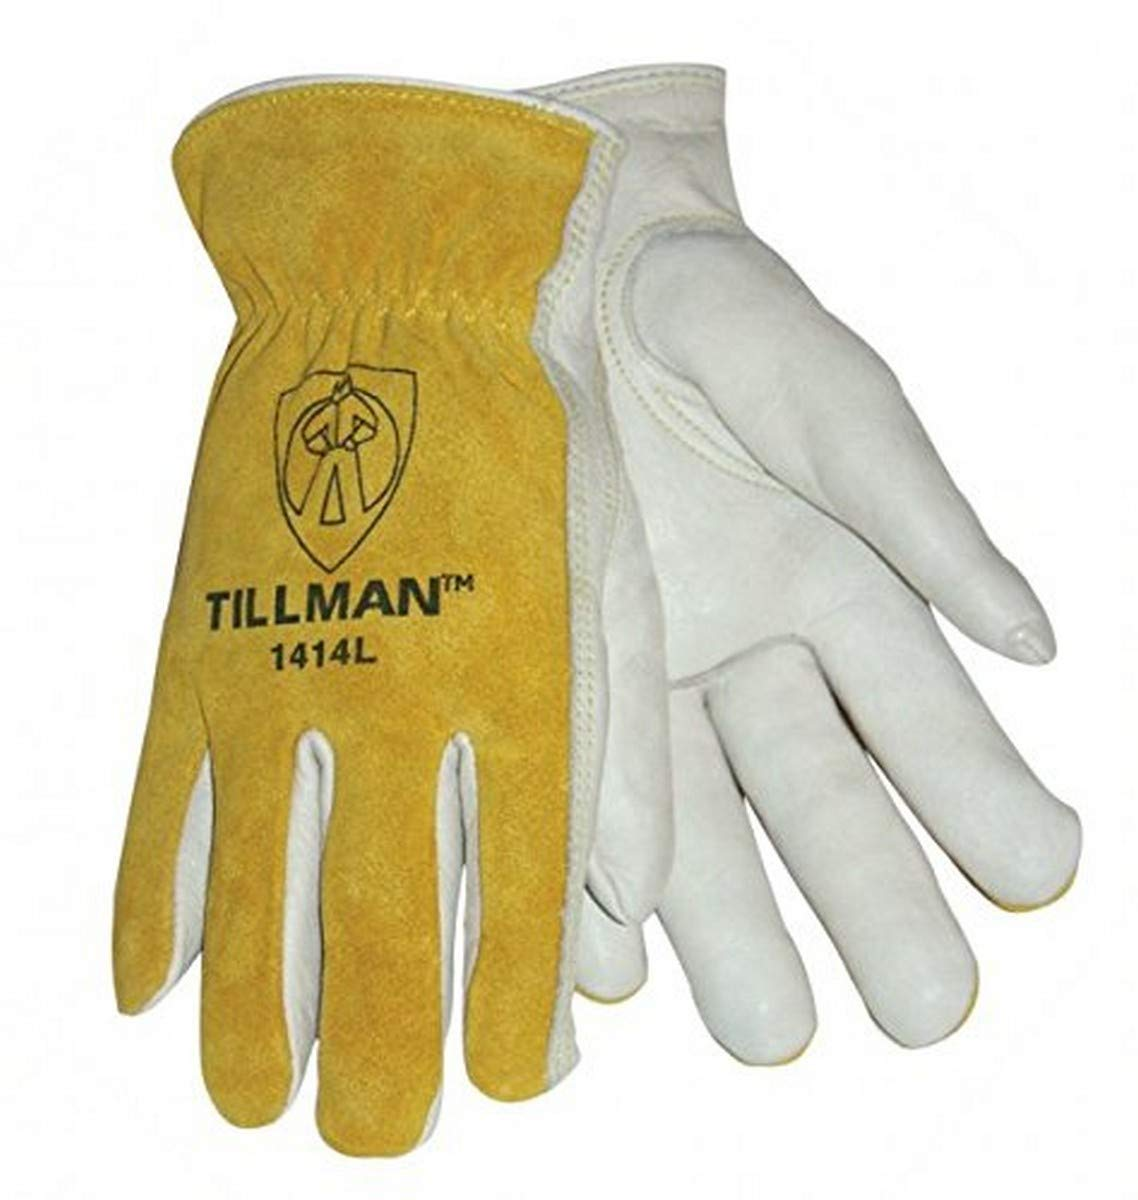 Tillman 1414M Selling 1414 Unlined Popular products Cowhide Drivers Glove Leather Cowhid